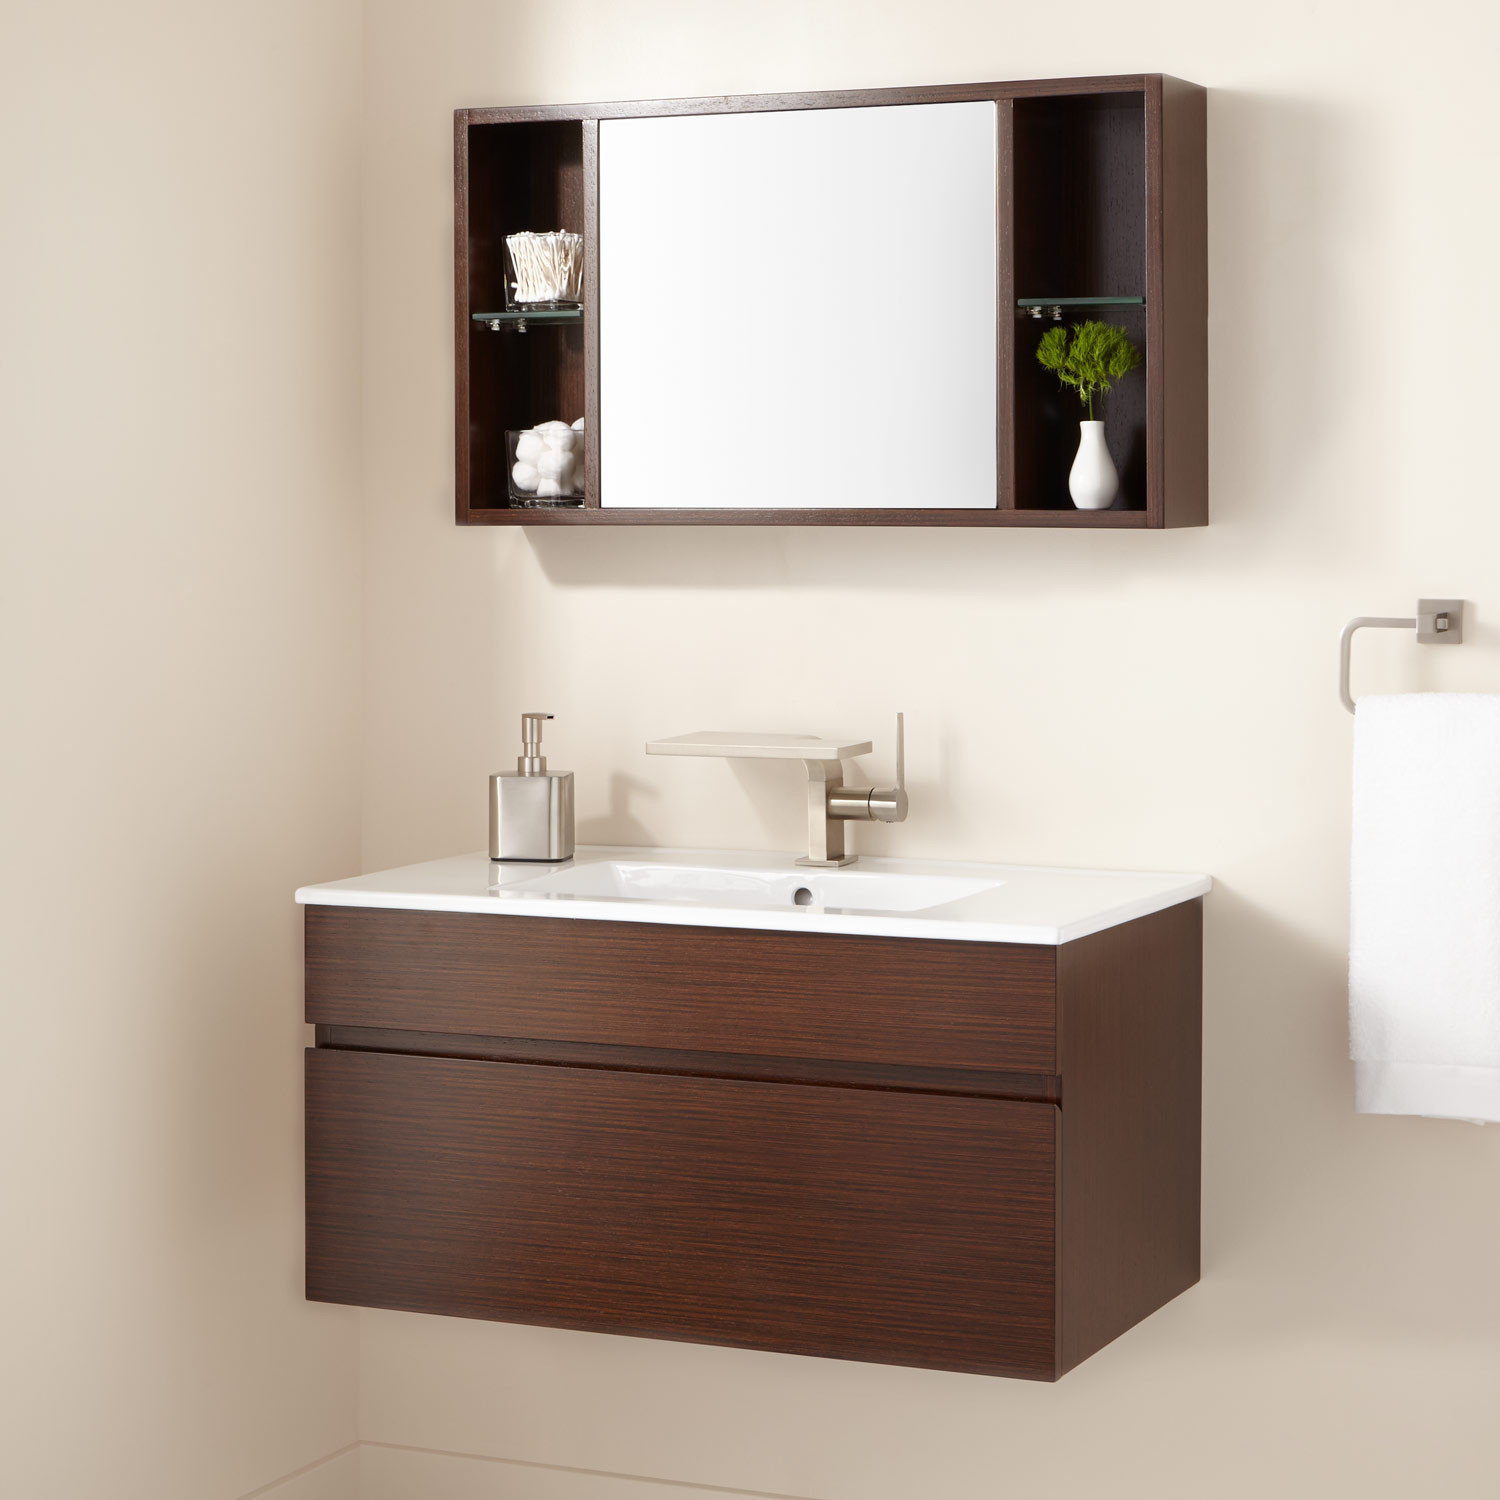 """Best ideas about Wall Mounted Bathroom Cabinets . Save or Pin 33"""" Dimitri Wall Mount Vanity and Mirrored Storage Bathroom Now."""